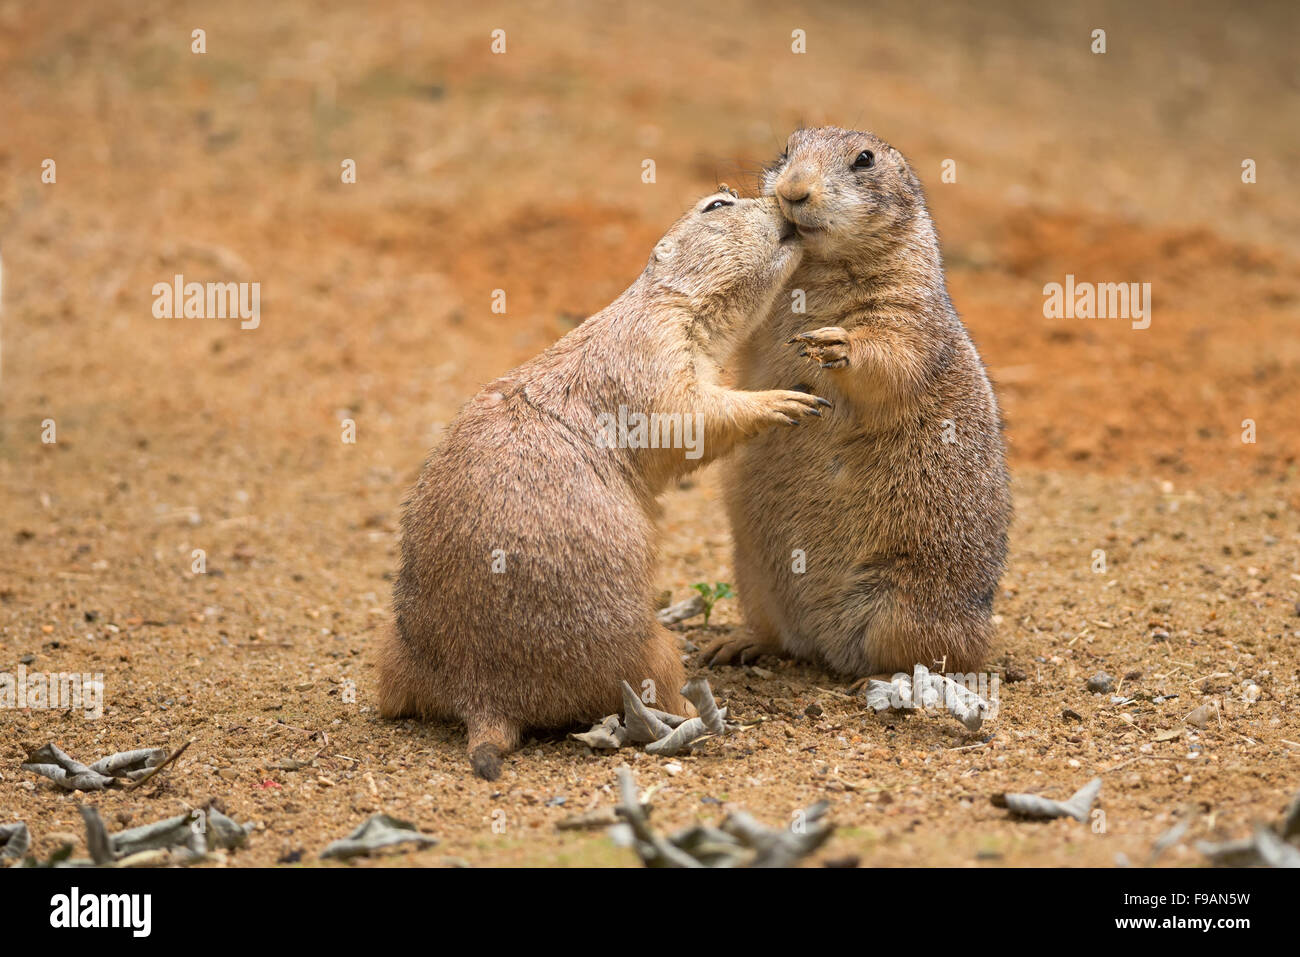 Two prairie dogs stock photos two prairie dogs stock images alamy two prairie dogs genus cynomys sharing their food stock image m4hsunfo